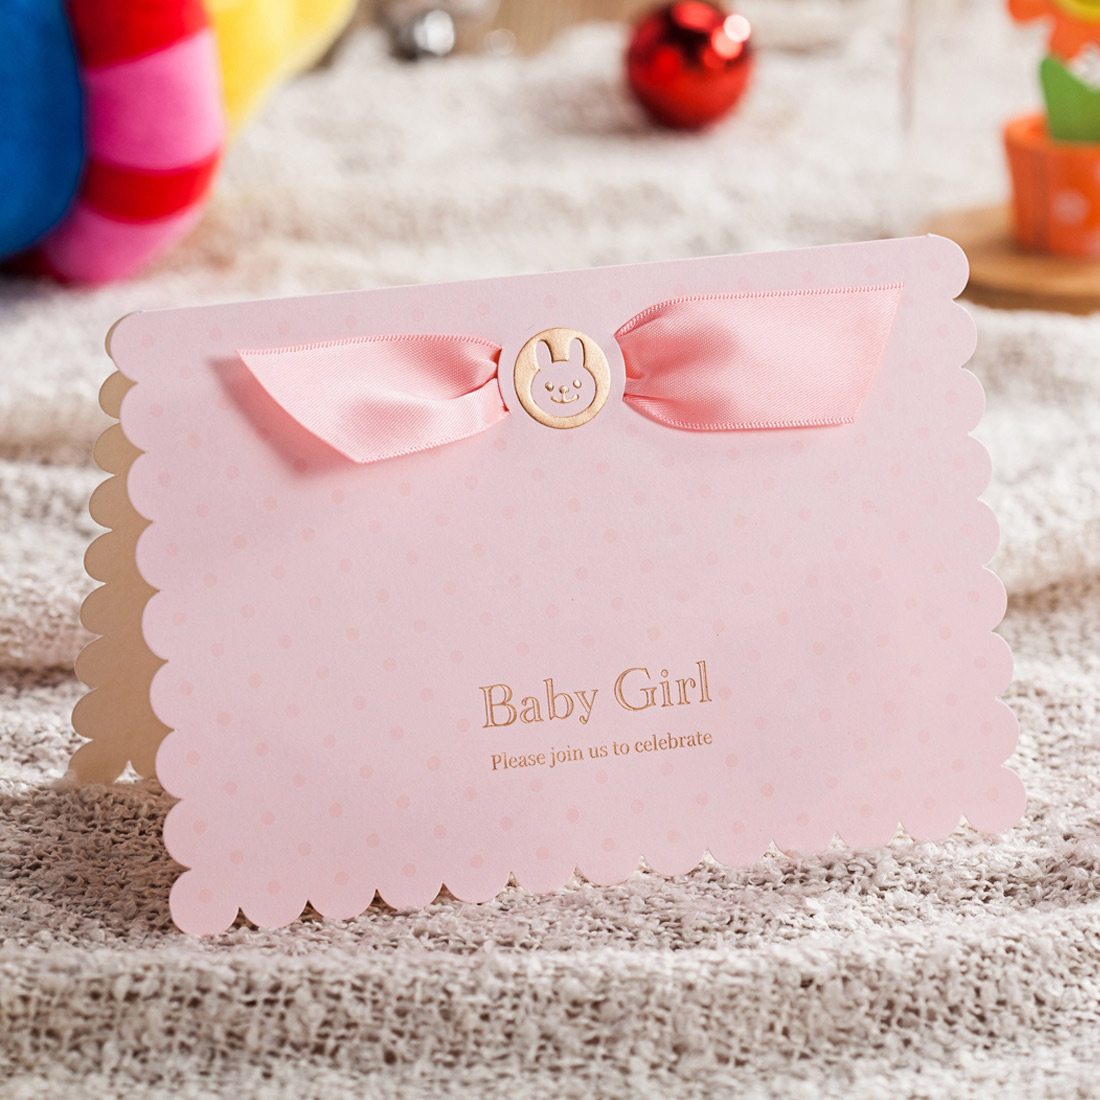 Details About Baby Shower Invitations Cards Kit Pink Printable For Girl Birthday With Envelope